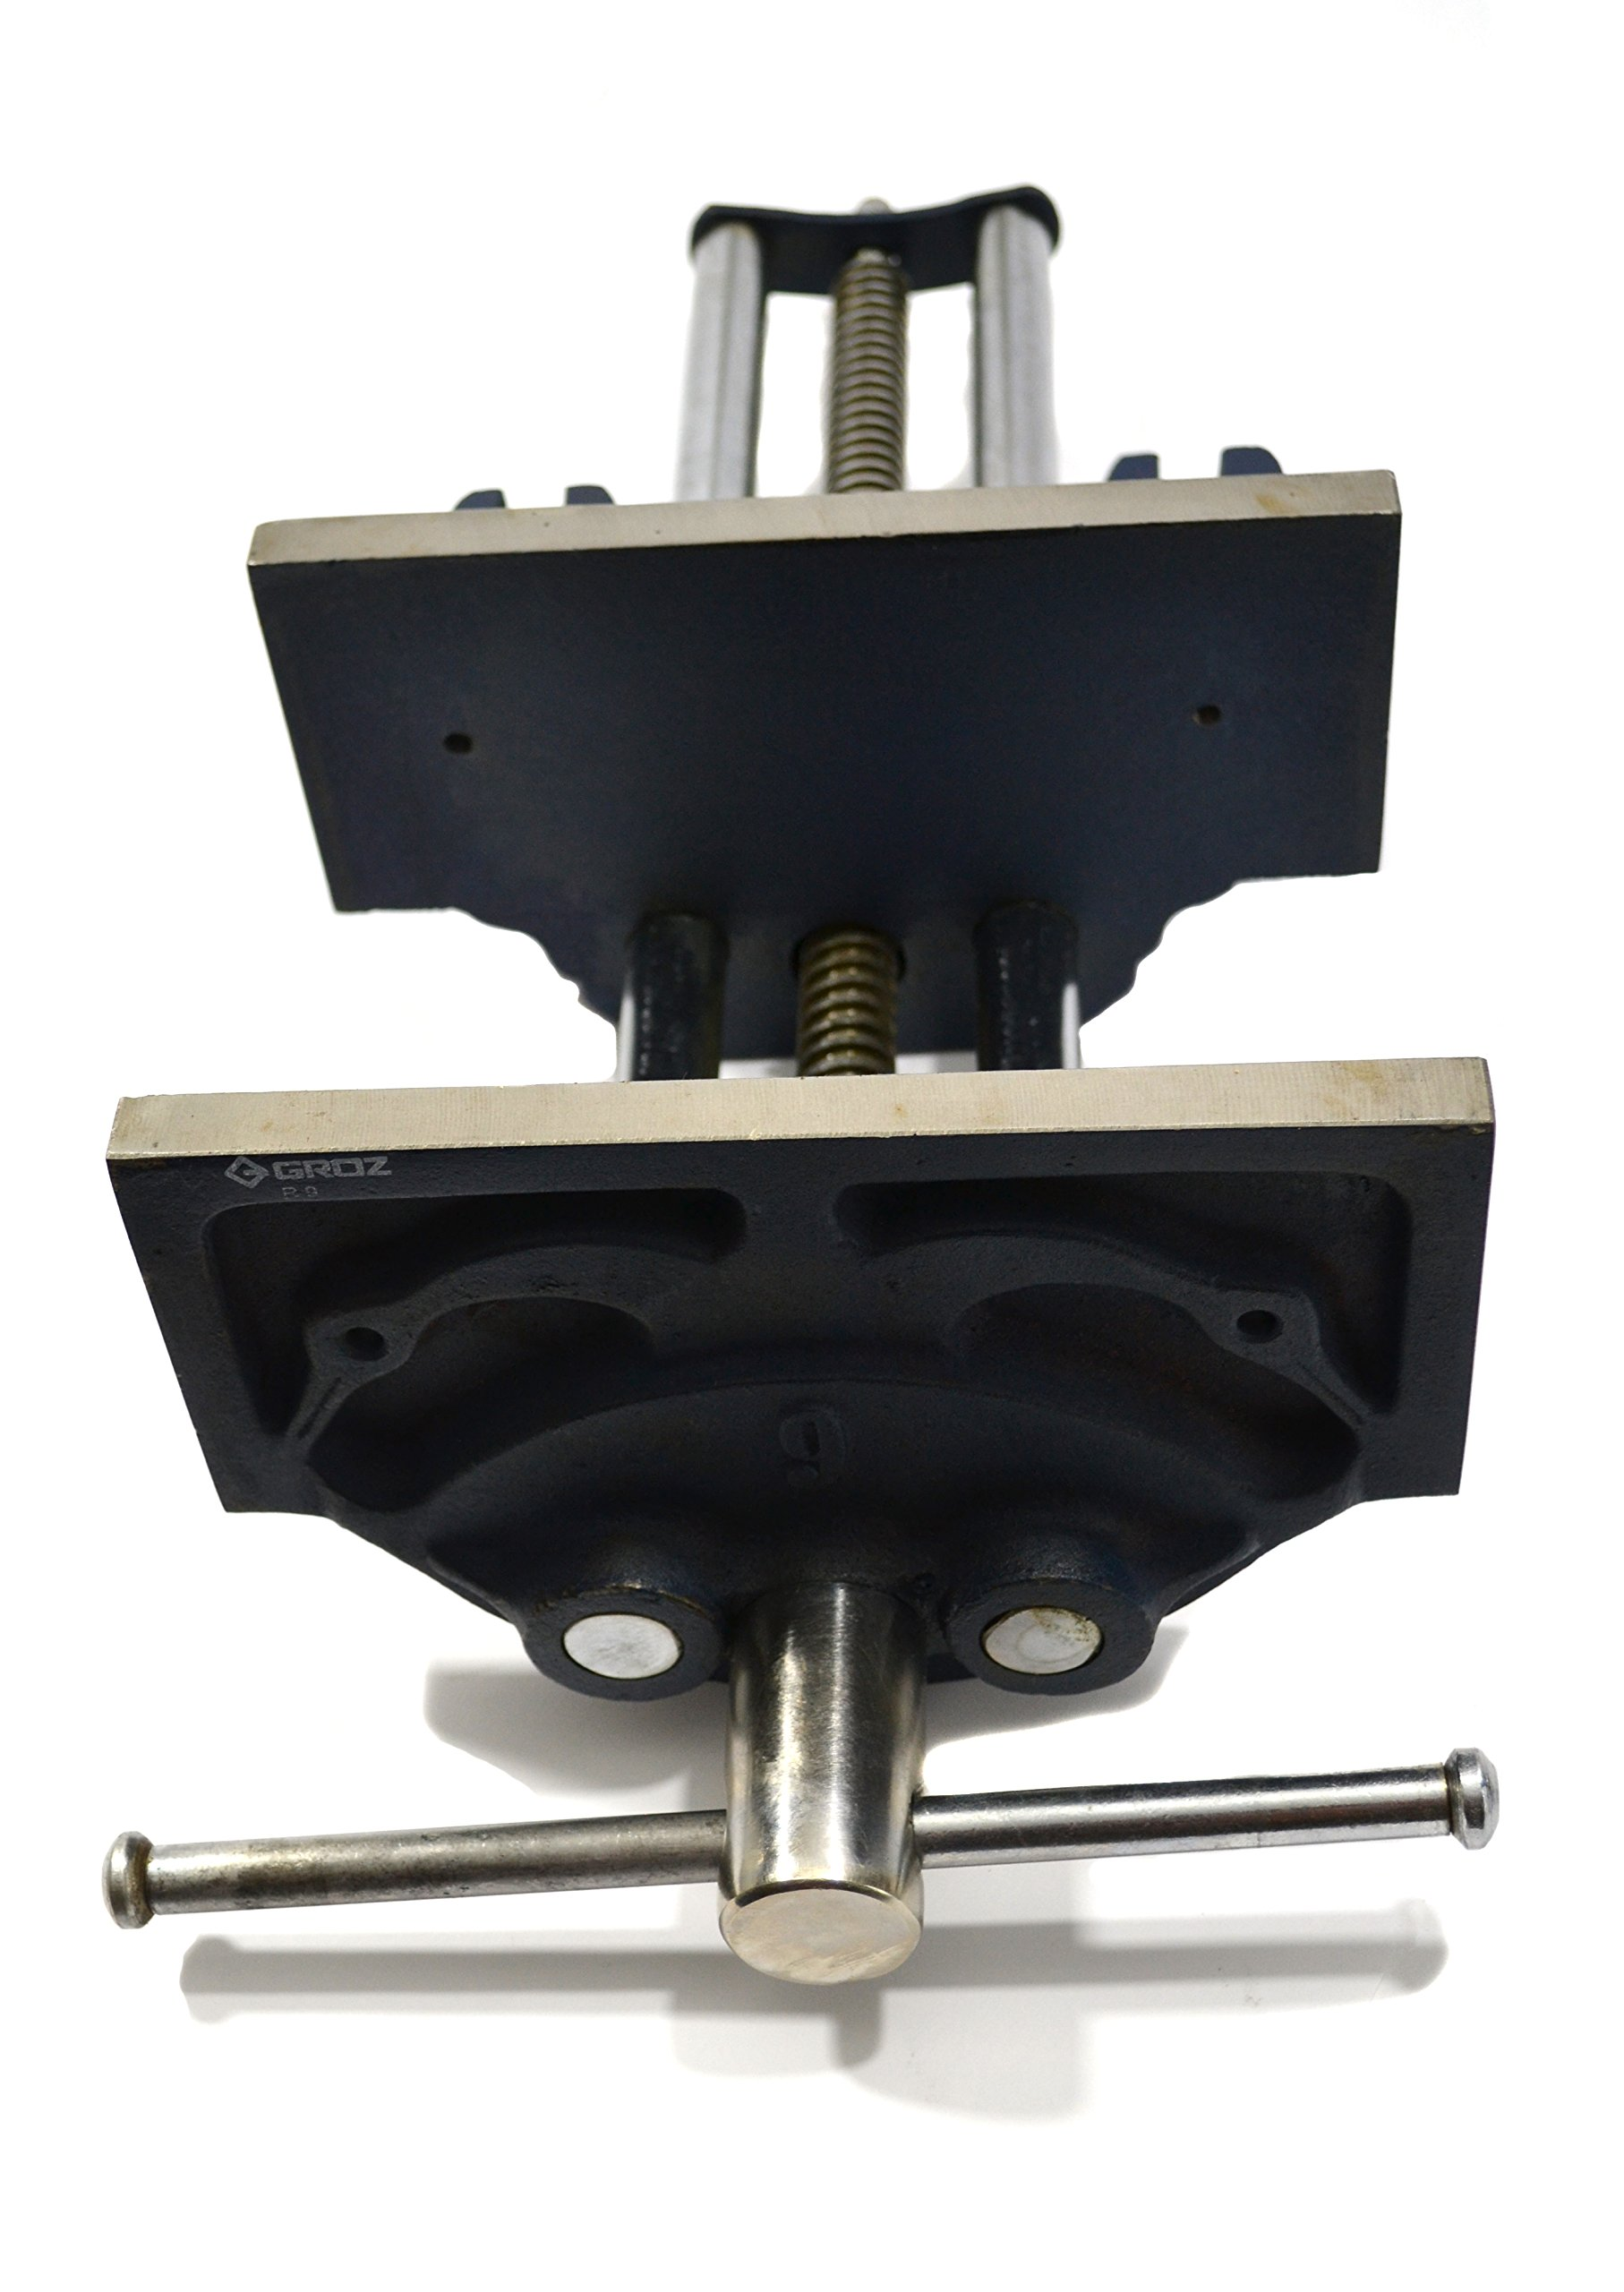 Groz 39012 Quick Release Woodworking Vice - Quick Release, Jaw width - 9'', Jaw Opening - 13-1/2''